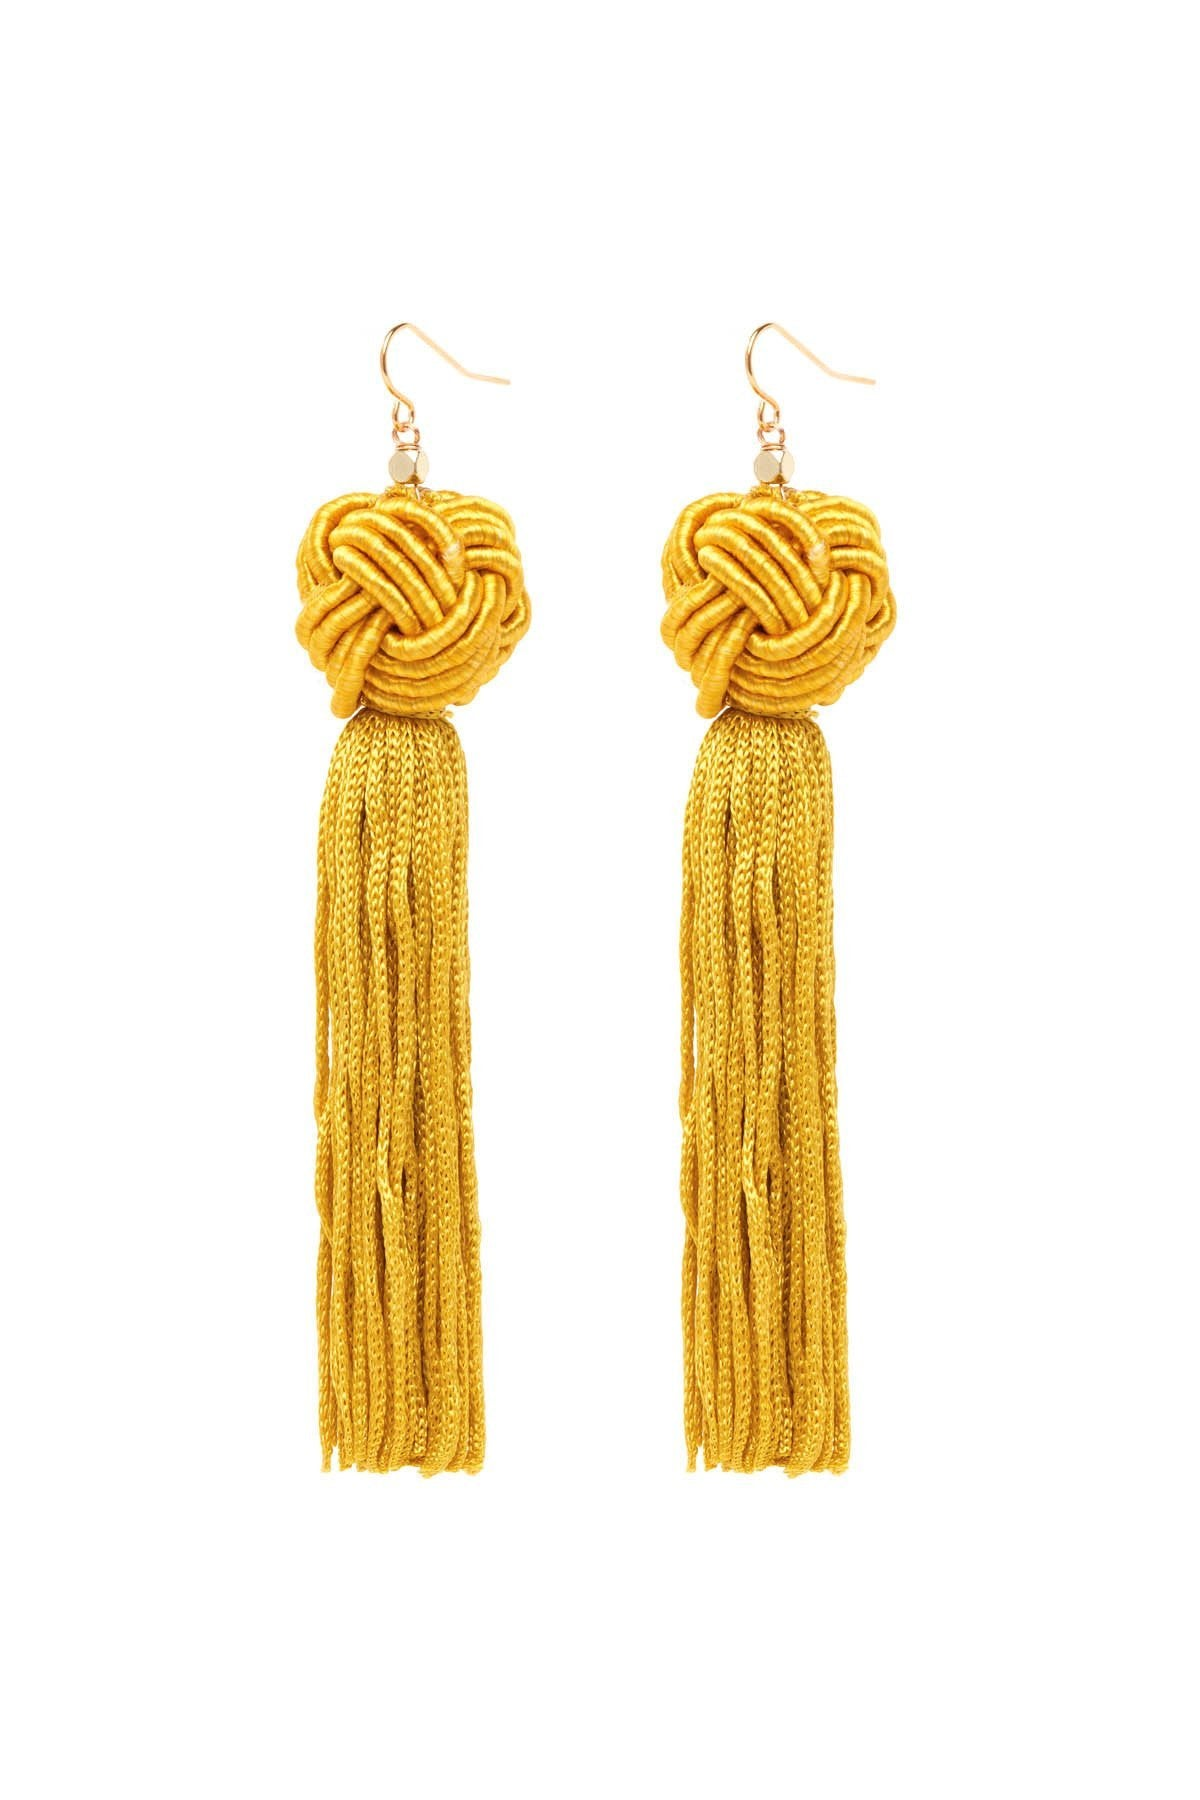 Girl wearing a earrings rental from Vanessa Mooney called The Astrid Gold Knotted Tassel Earrings